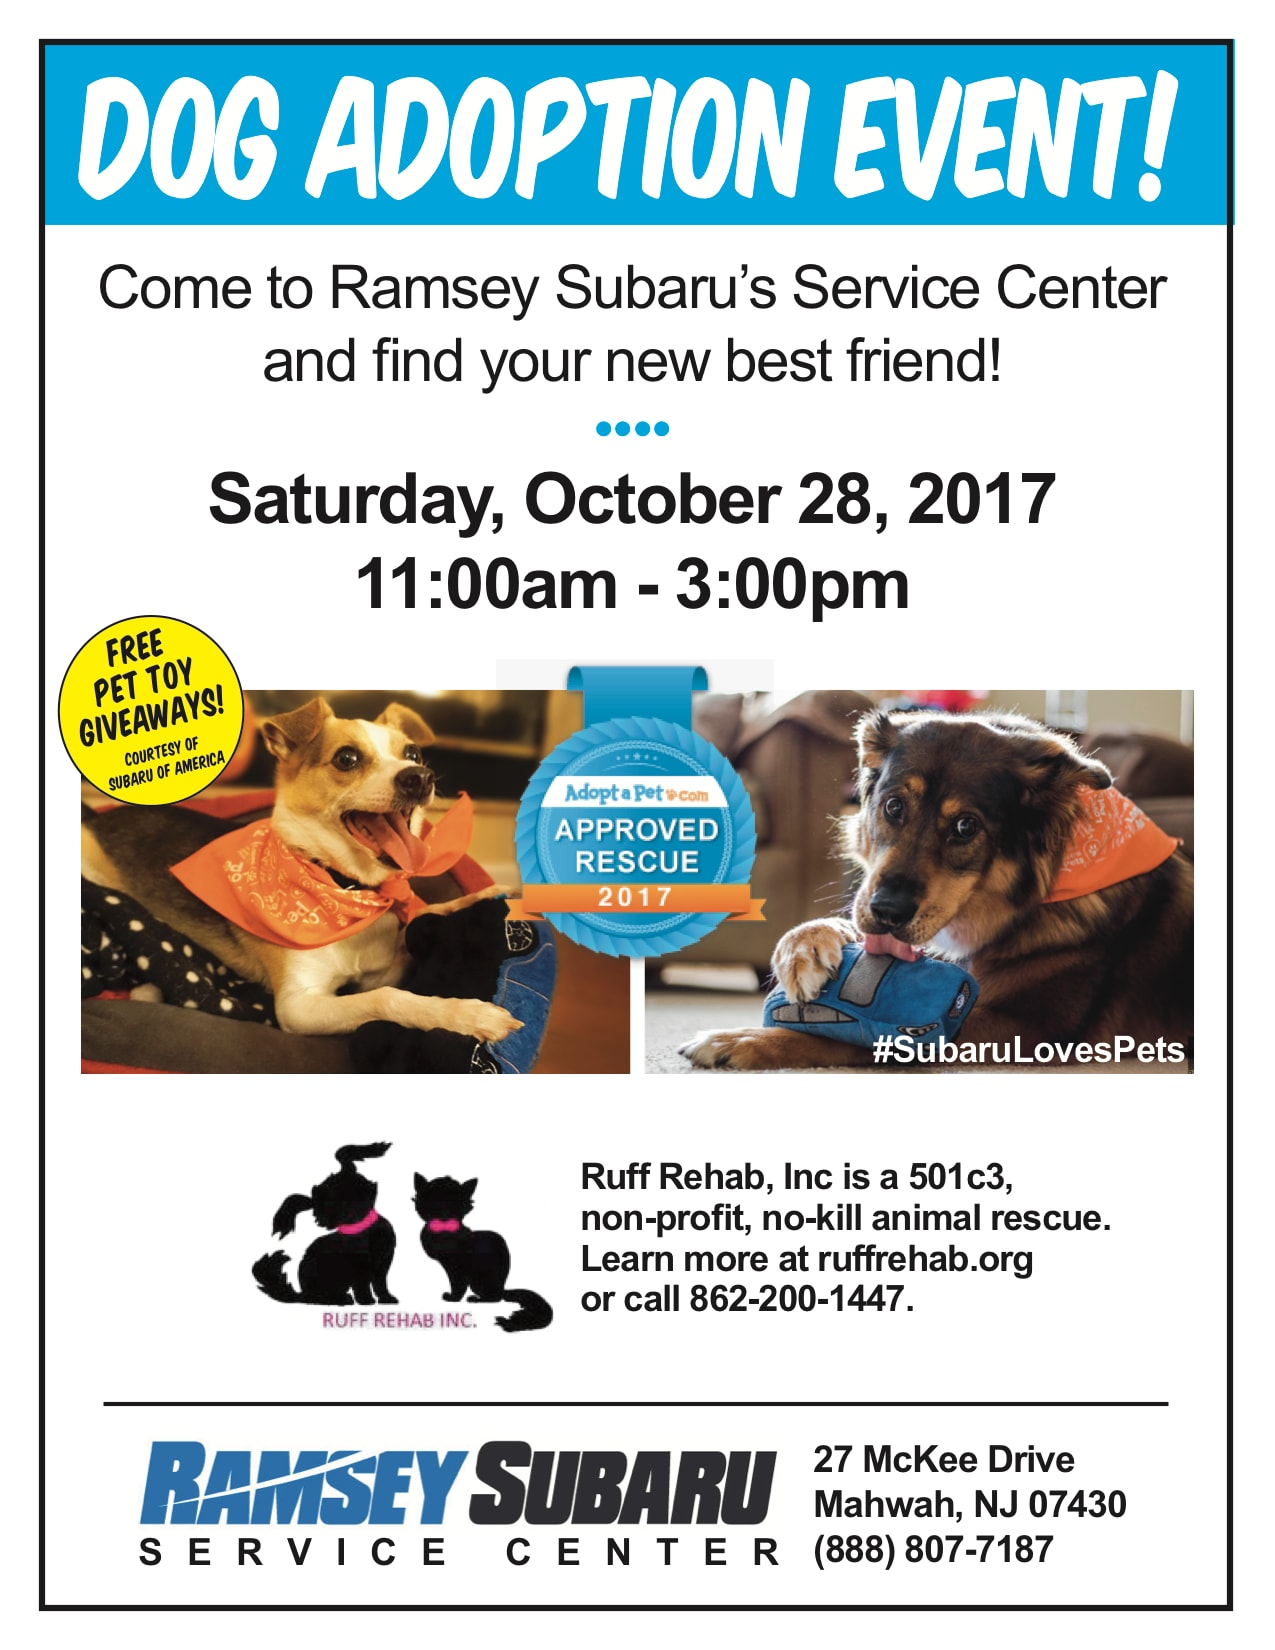 Ruff Rehab Dog Adoption Event NJ